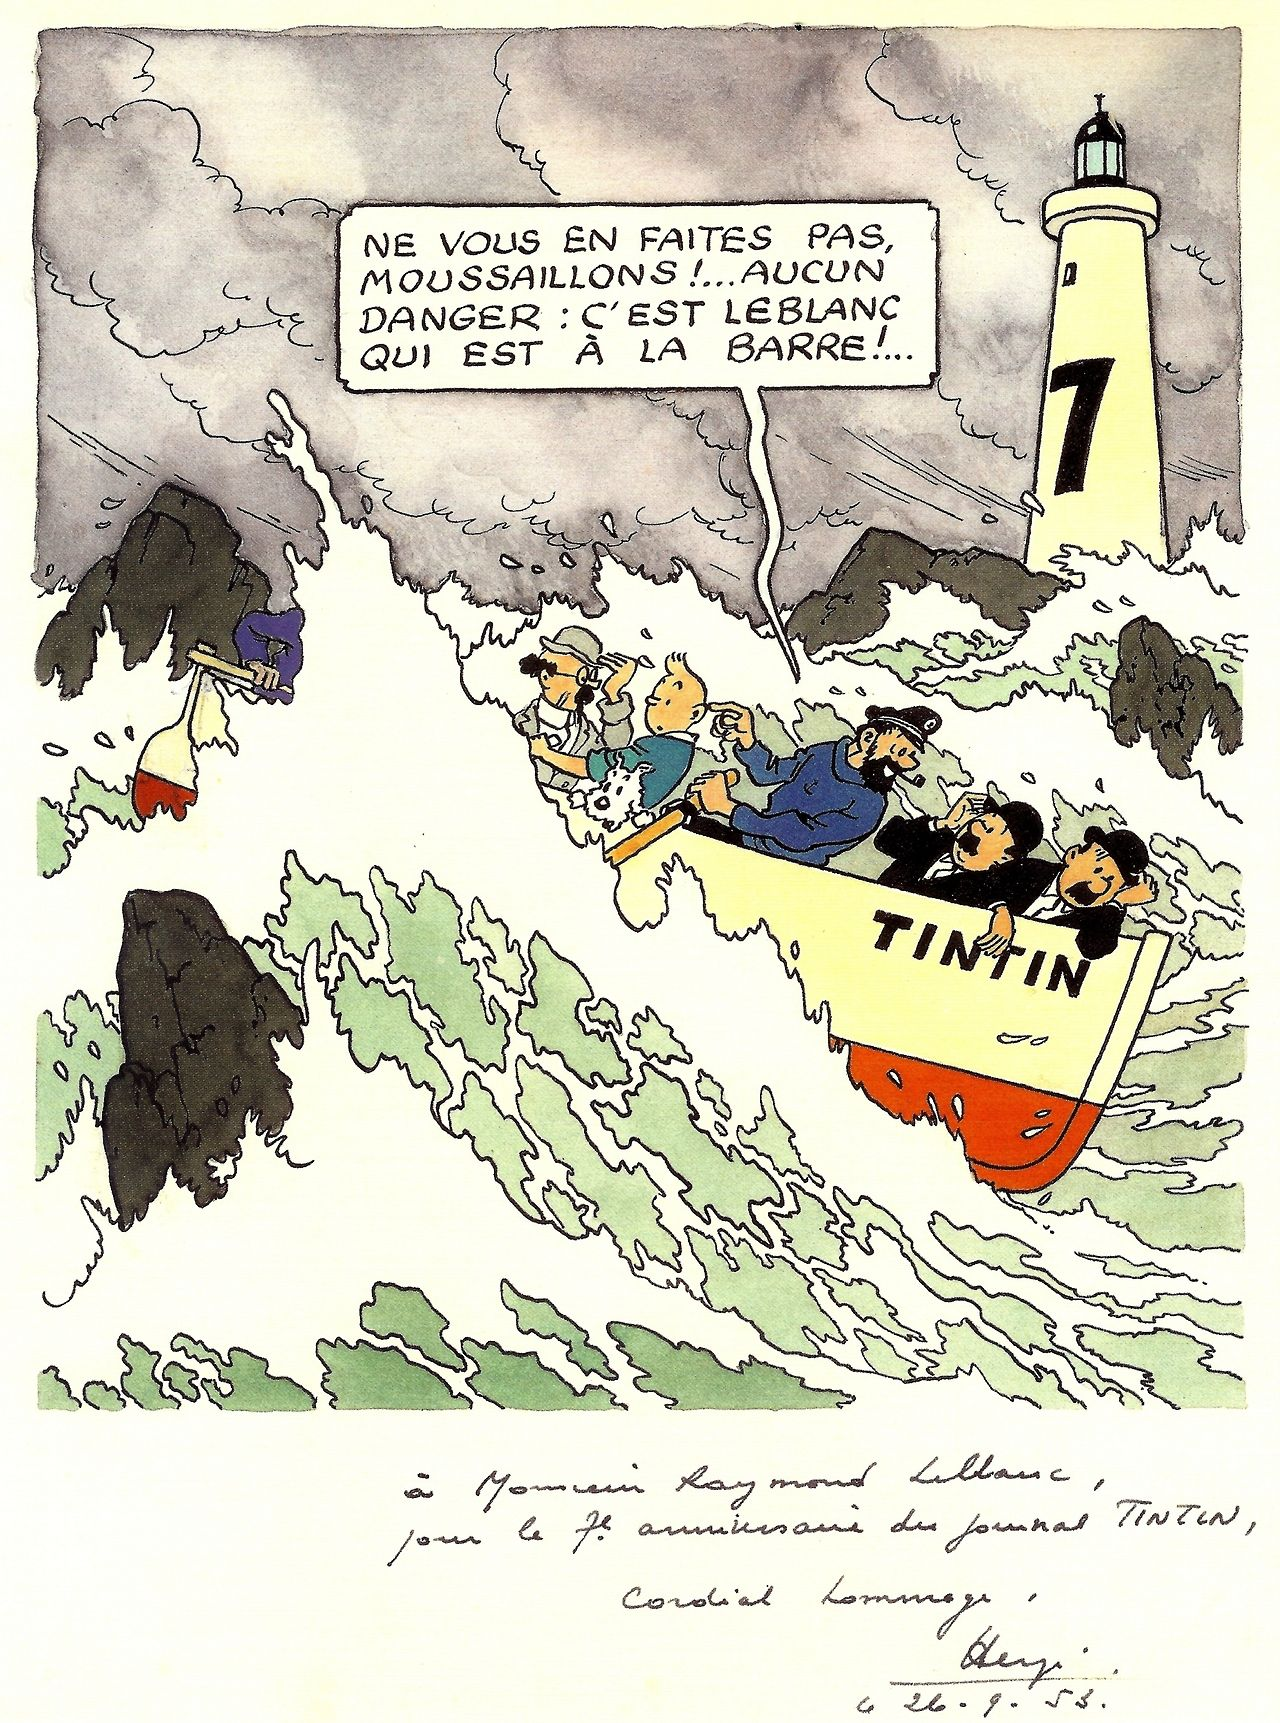 "Hergé - 1953 Sept. 26th - Drawing for Raymond Leblanc - 7th anniversary of Tintin magazine ""Do not worry, buccaneers!… No danger: it's Leblanc who is at the helm!…"""